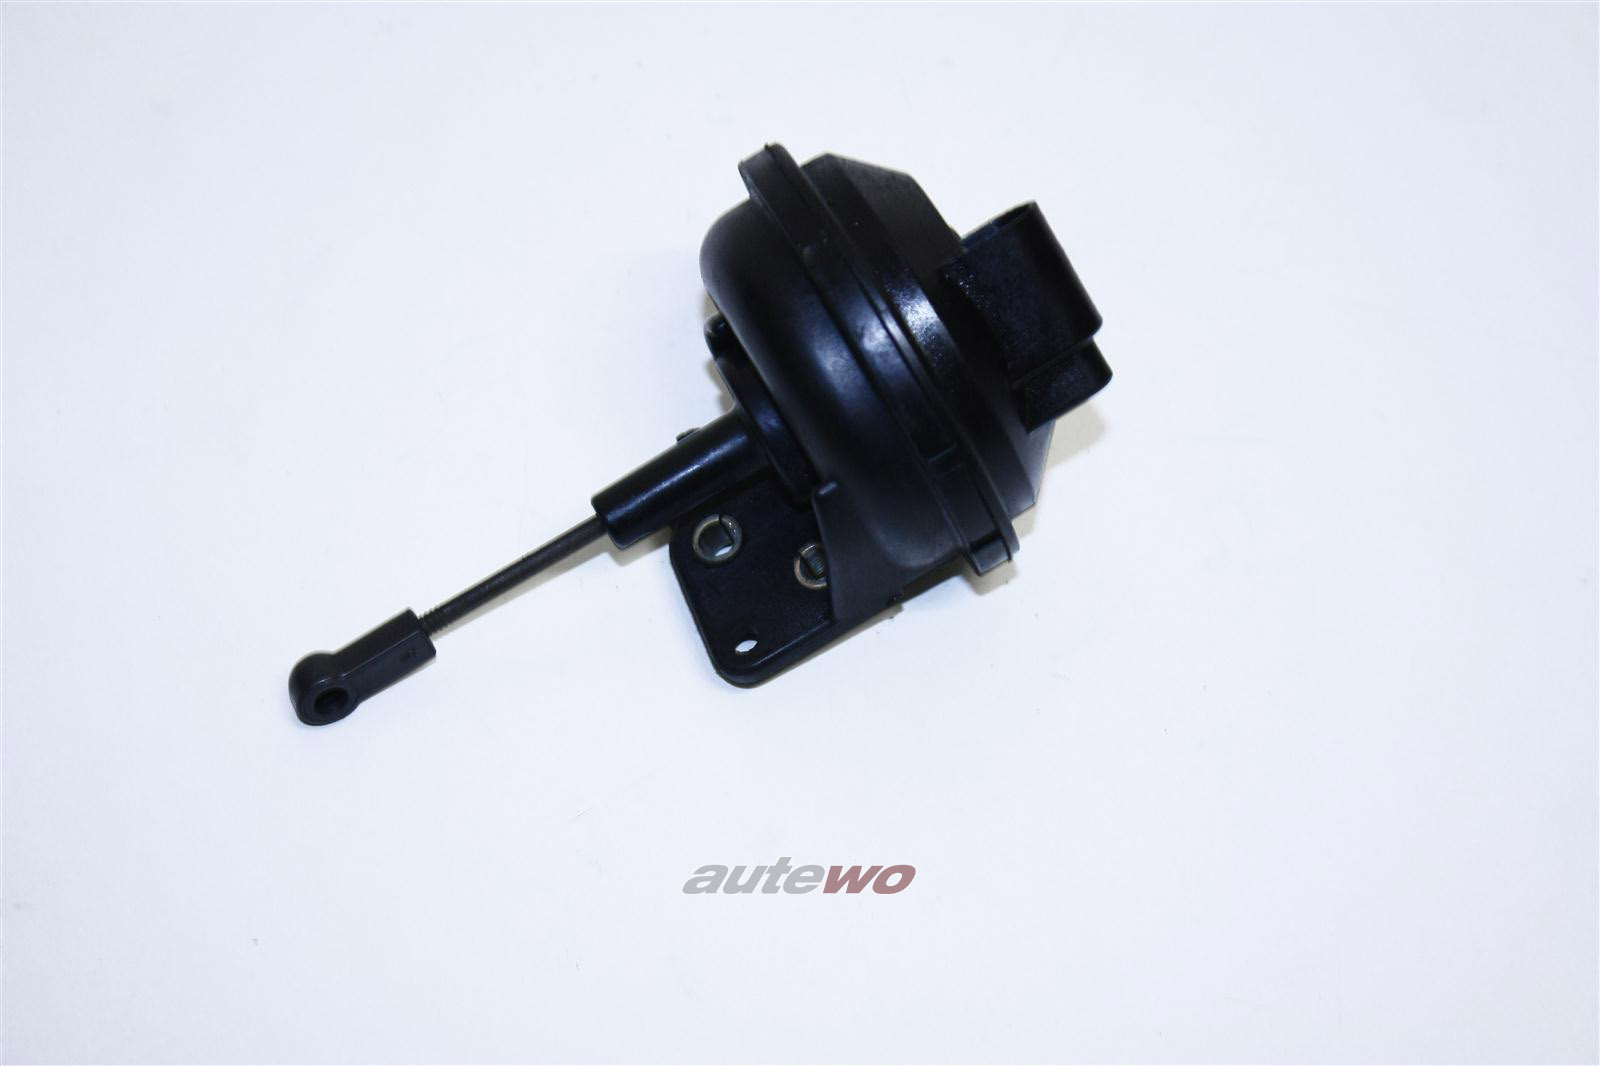 Audi 80 B4/100/A6 C4 2.8l 174PS AAH Unterdruckdose Saugrohr 078133159